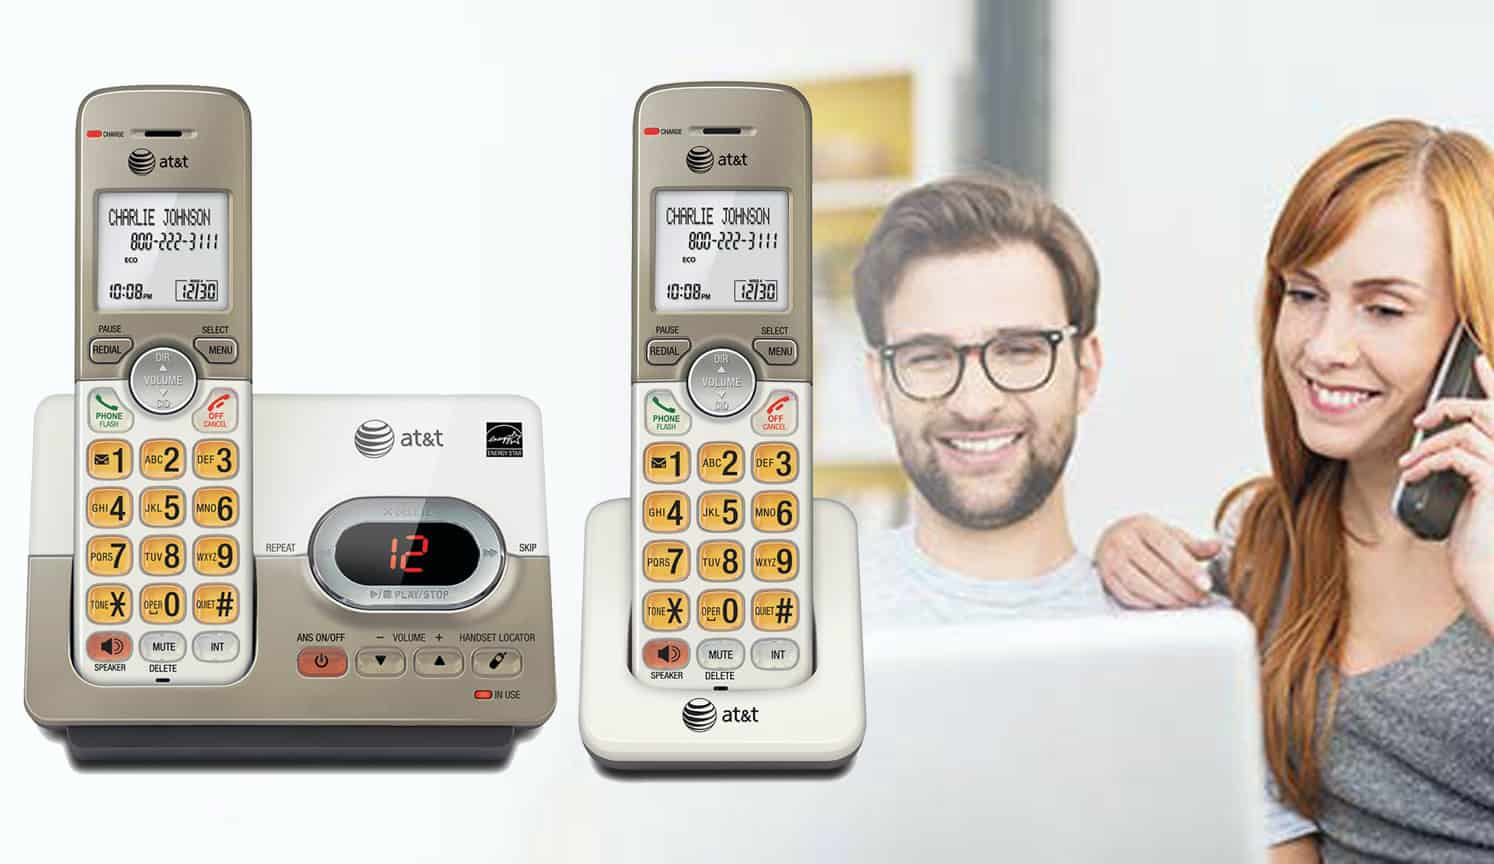 Cordless Speakerphone as the third related product of the Best Cordless Phone